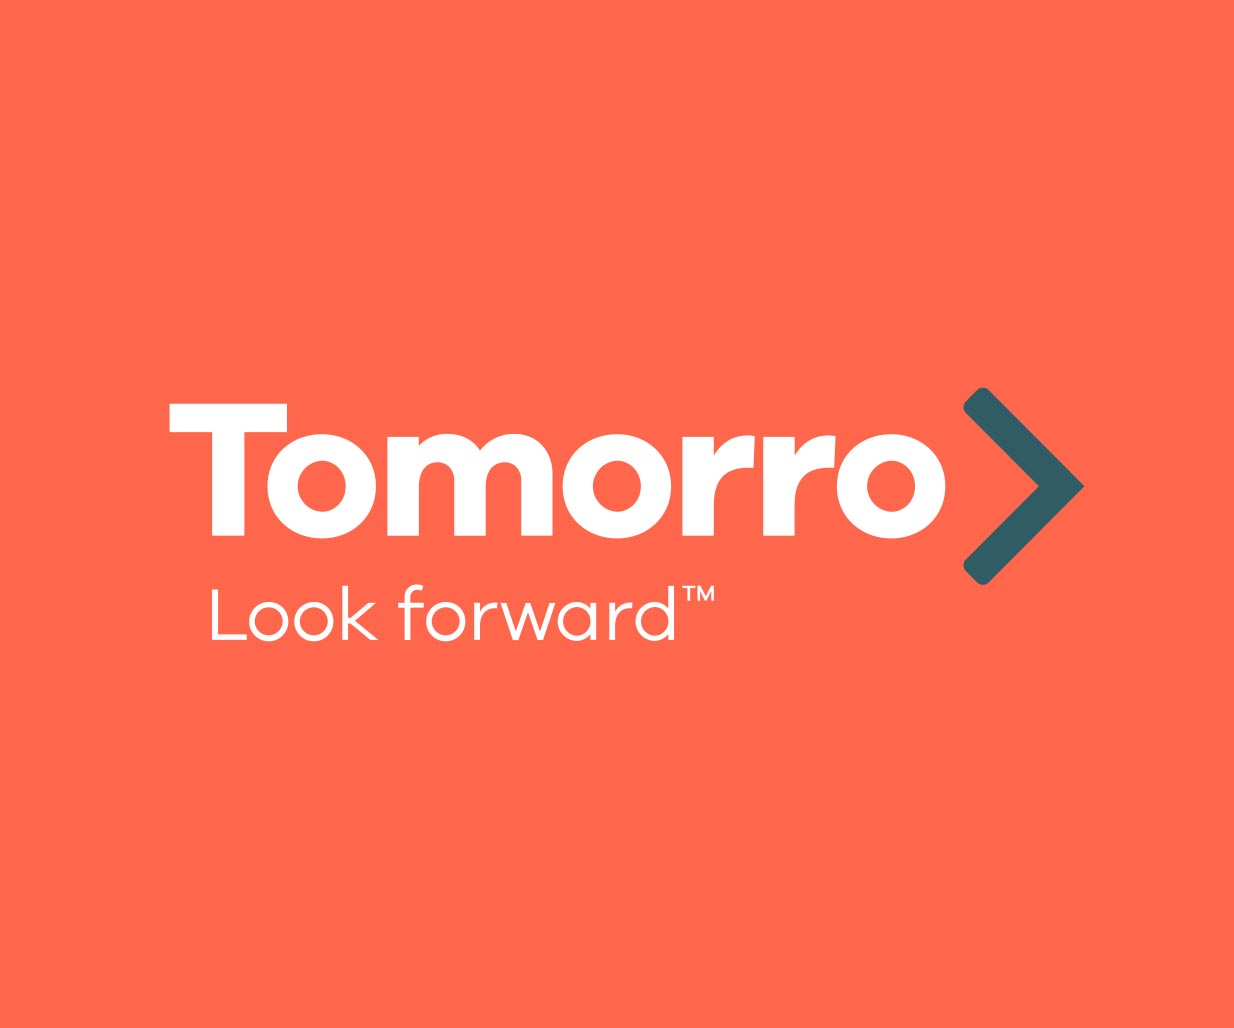 Company Naming & Brand Identity for tech start-up by the Percept Brand Agency, image A